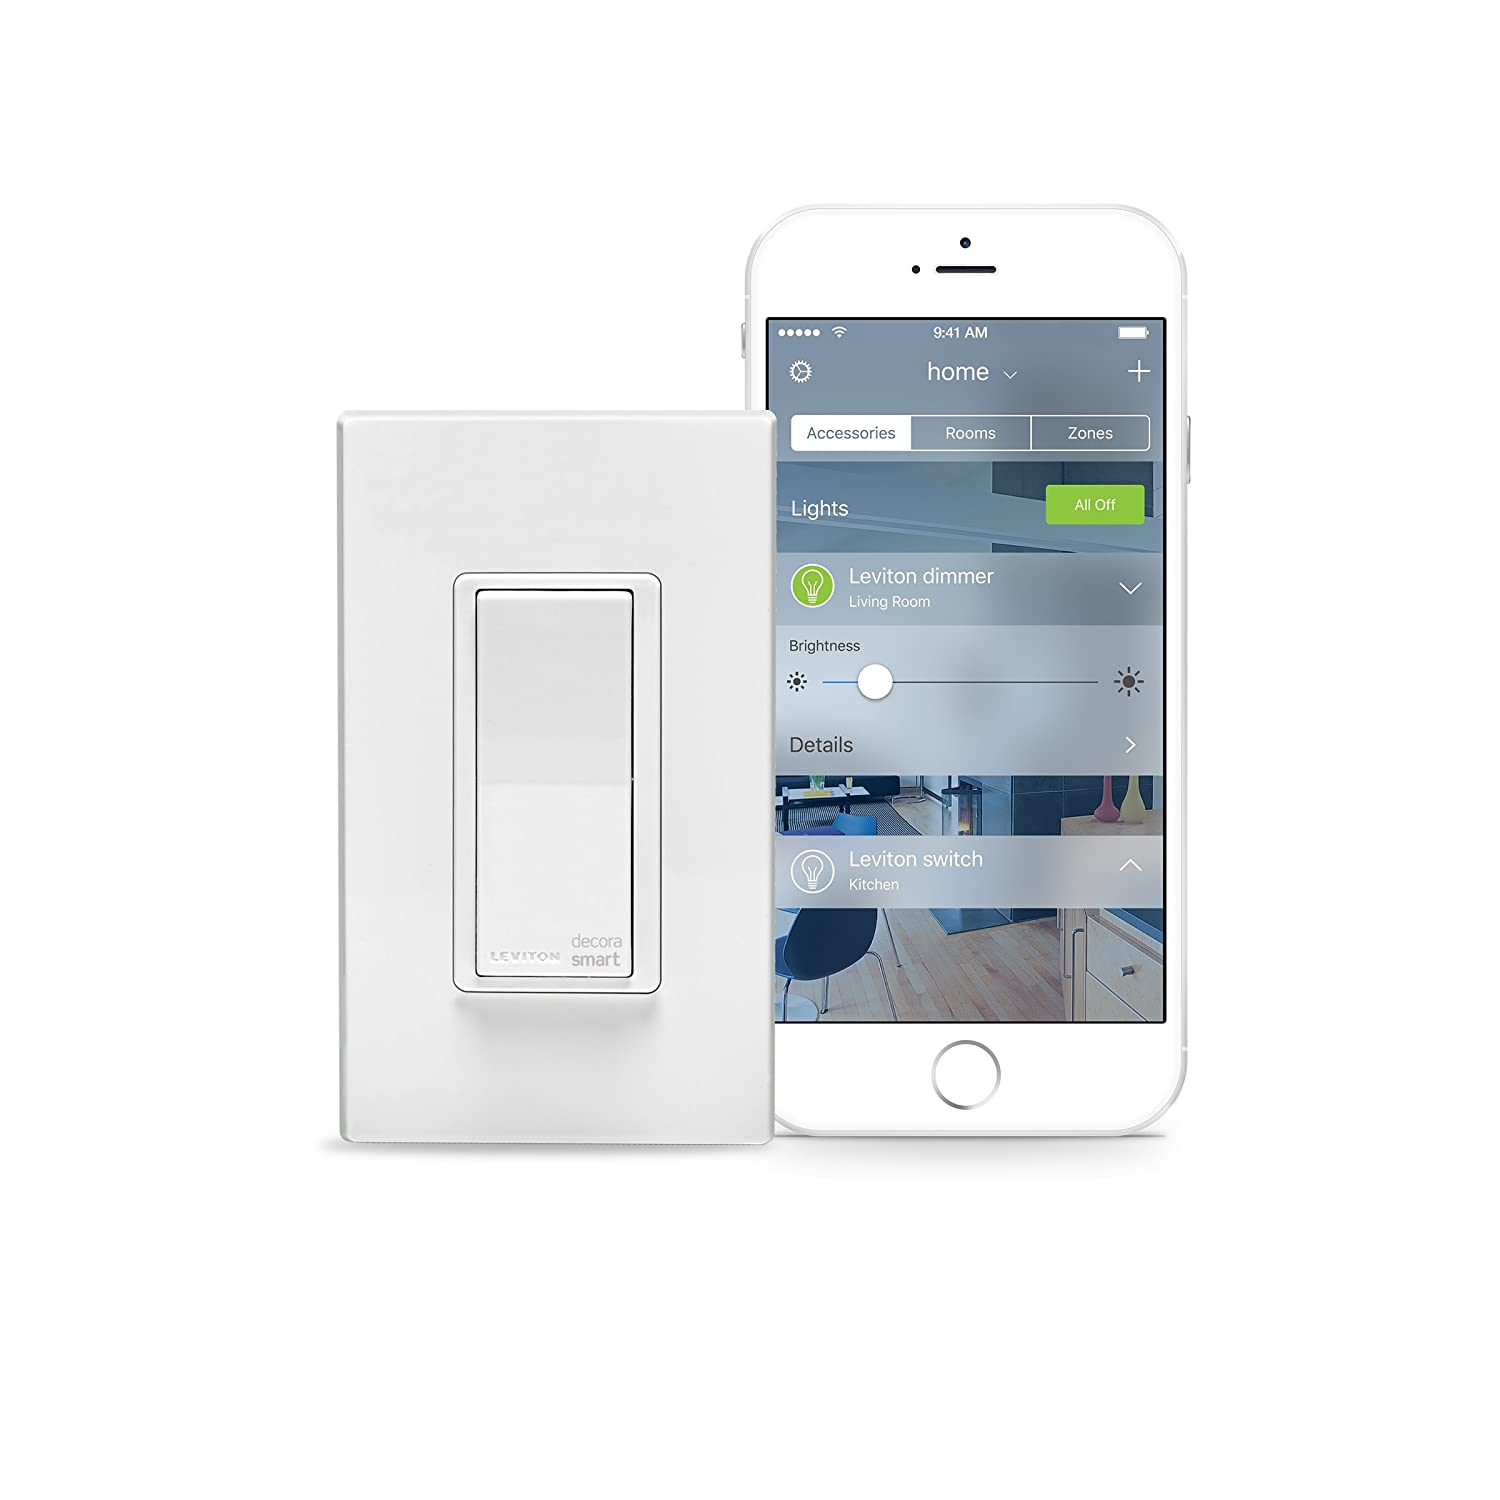 Leviton DH15S-1BZ 15A Decora Smart Switch, Works with Apple HomeKit ...